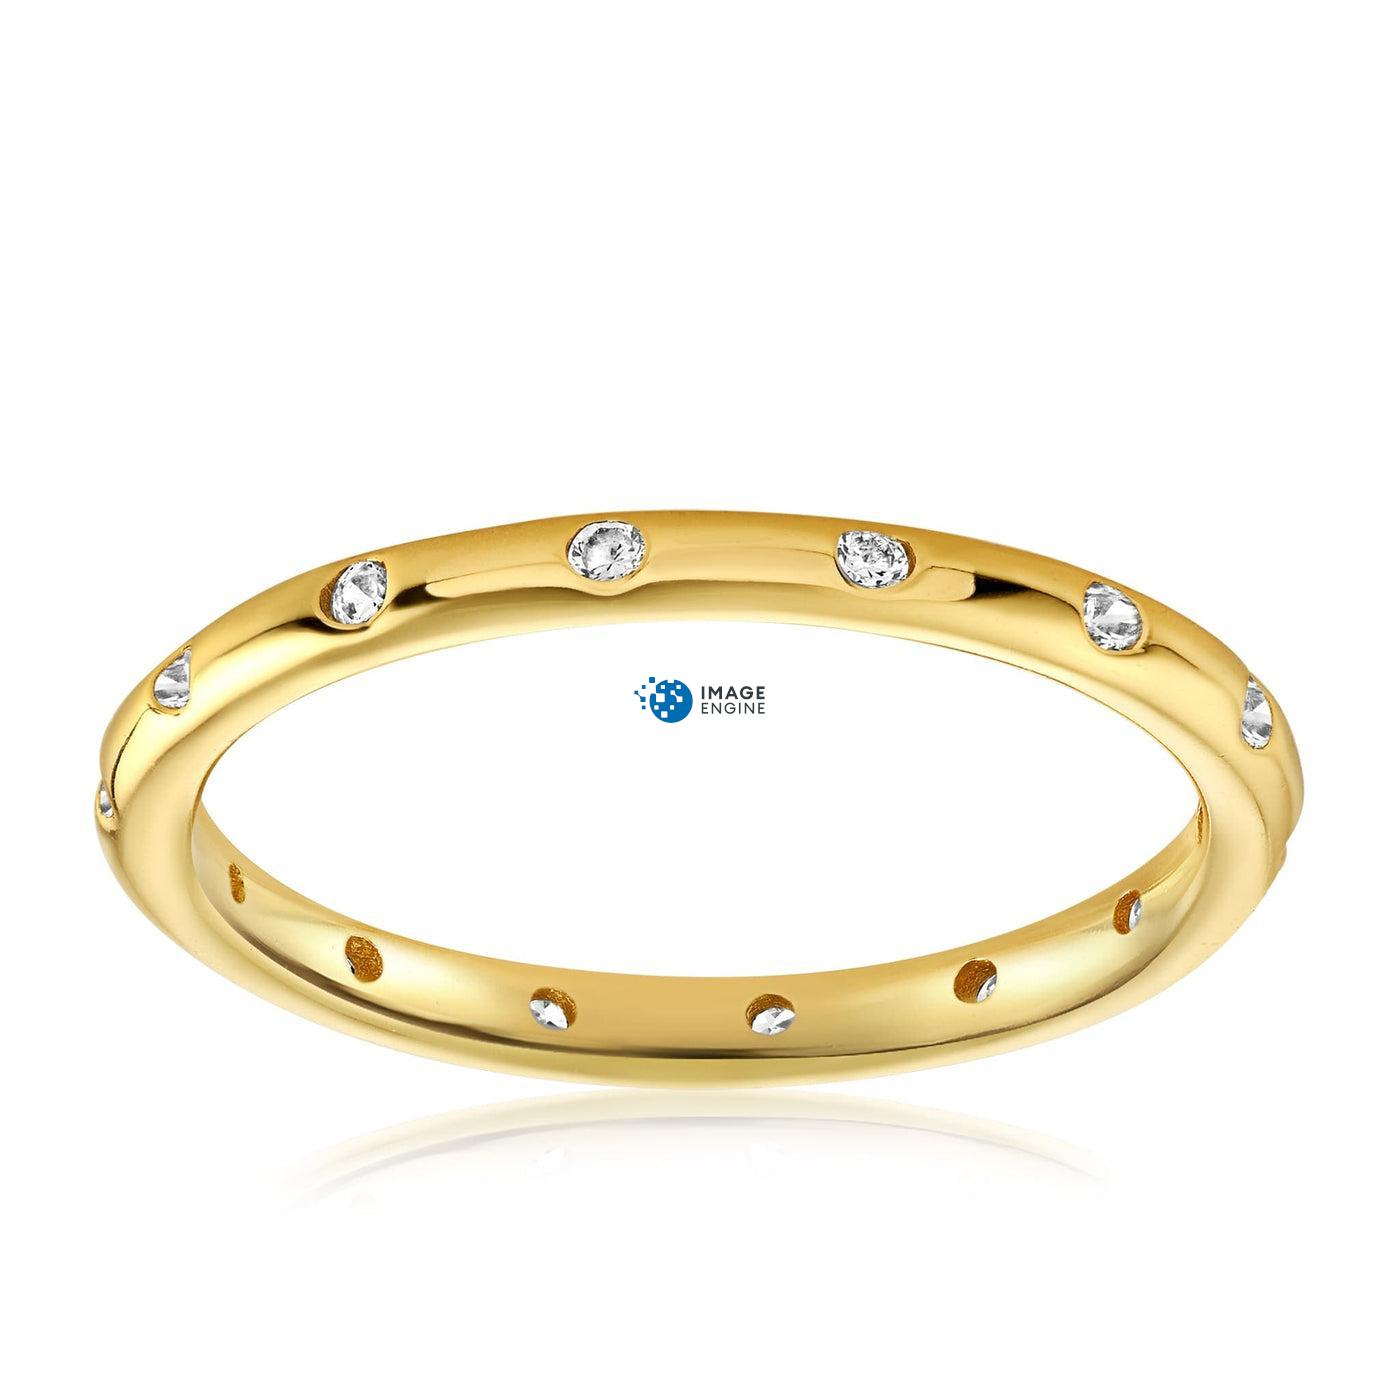 Droplet Ring - Front View Facing Up - 18K Yellow Gold Vermeil - Featured